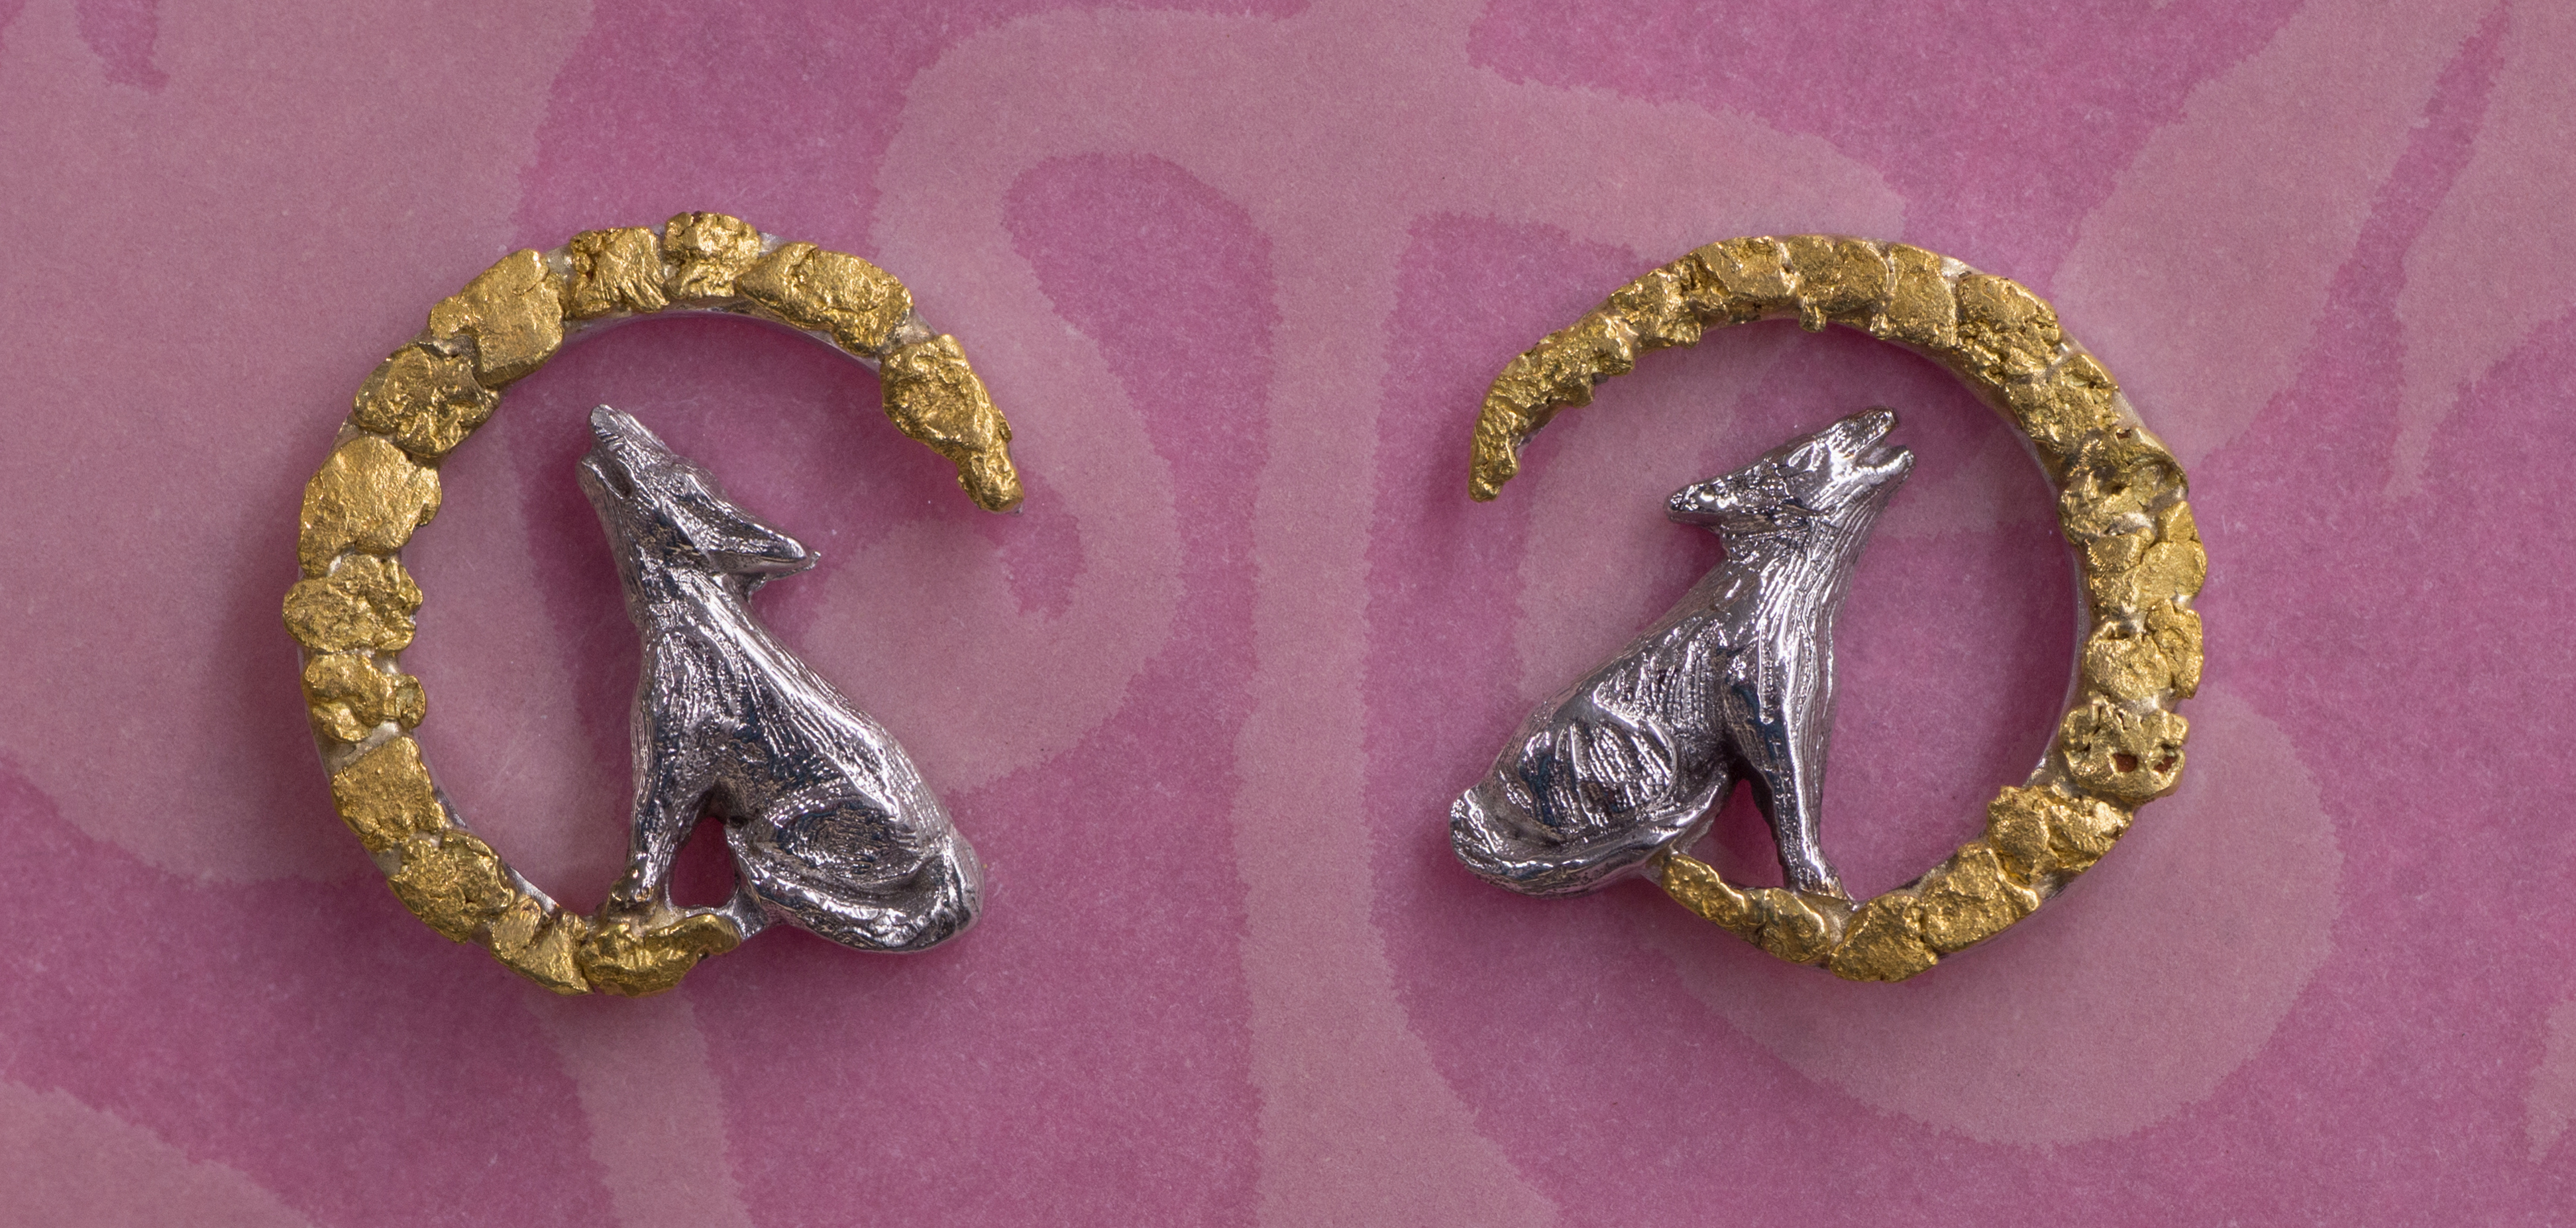 Wild Alaska Howling Wolf Earrings Crafted in 14kt White Gold with Natural Alaskan Gold Nuggets